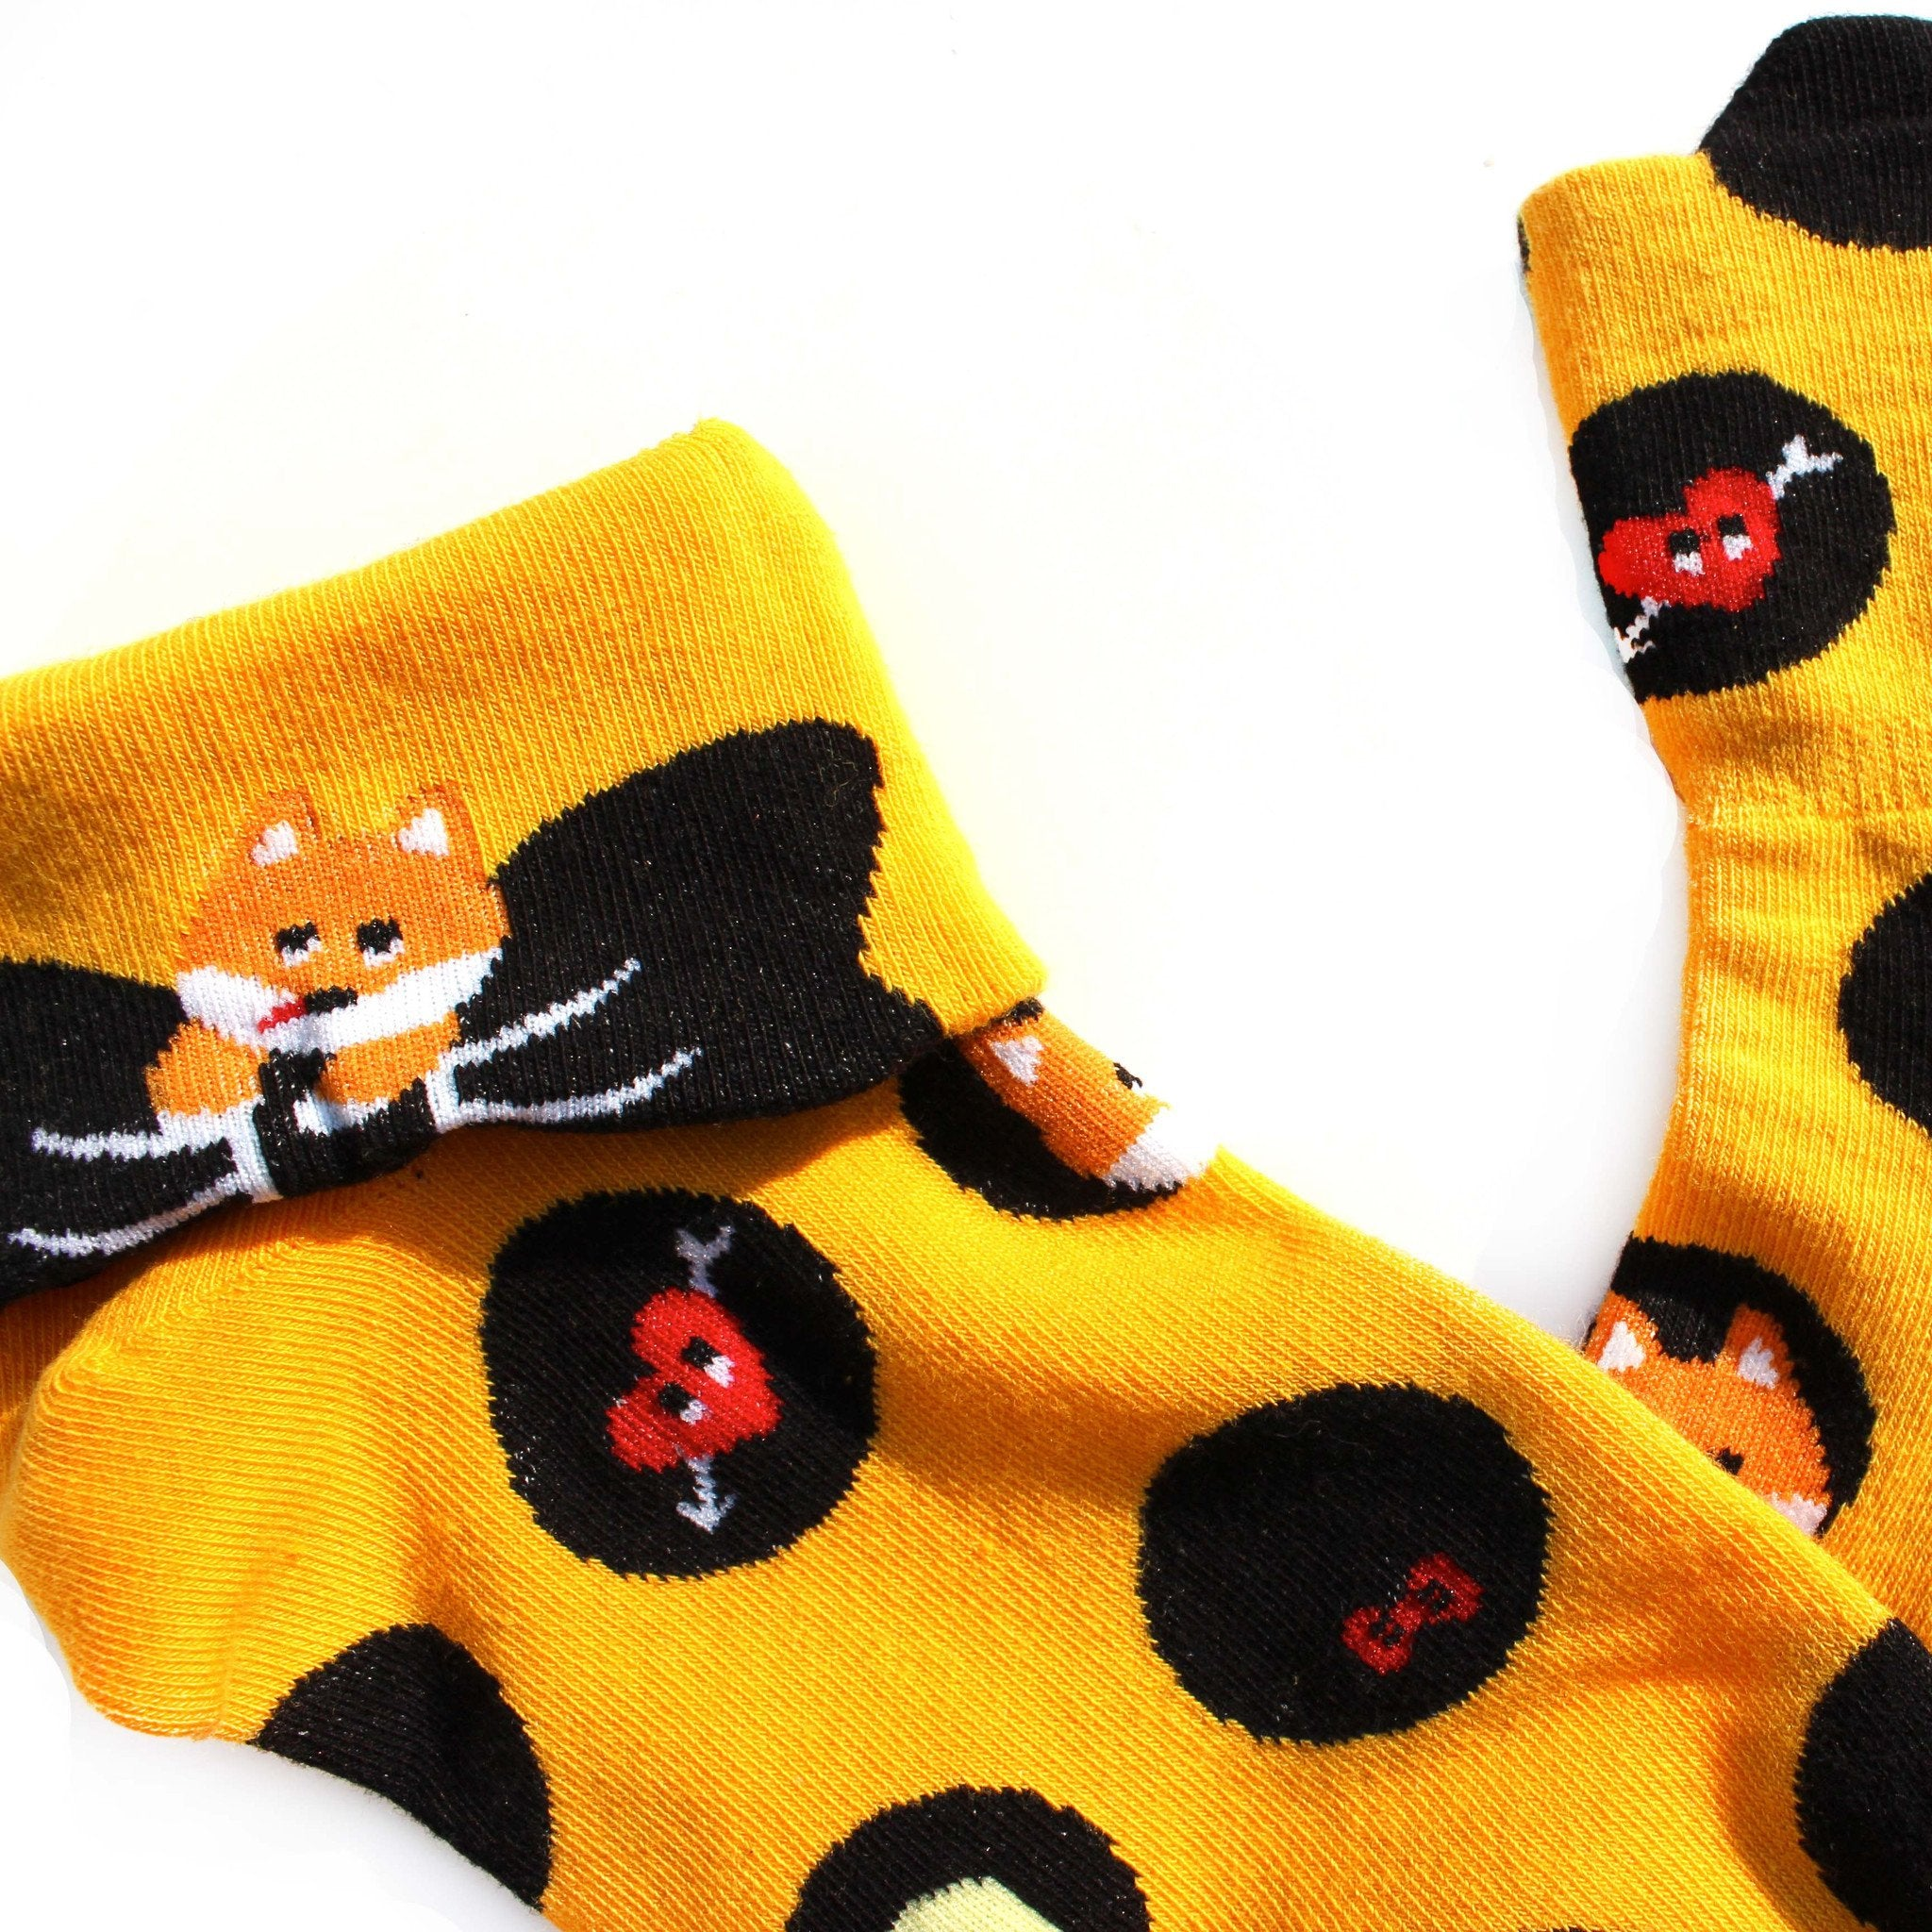 Fox Polka Dot and Bow Tie Animal Graphic Print Cotton Socks for Women